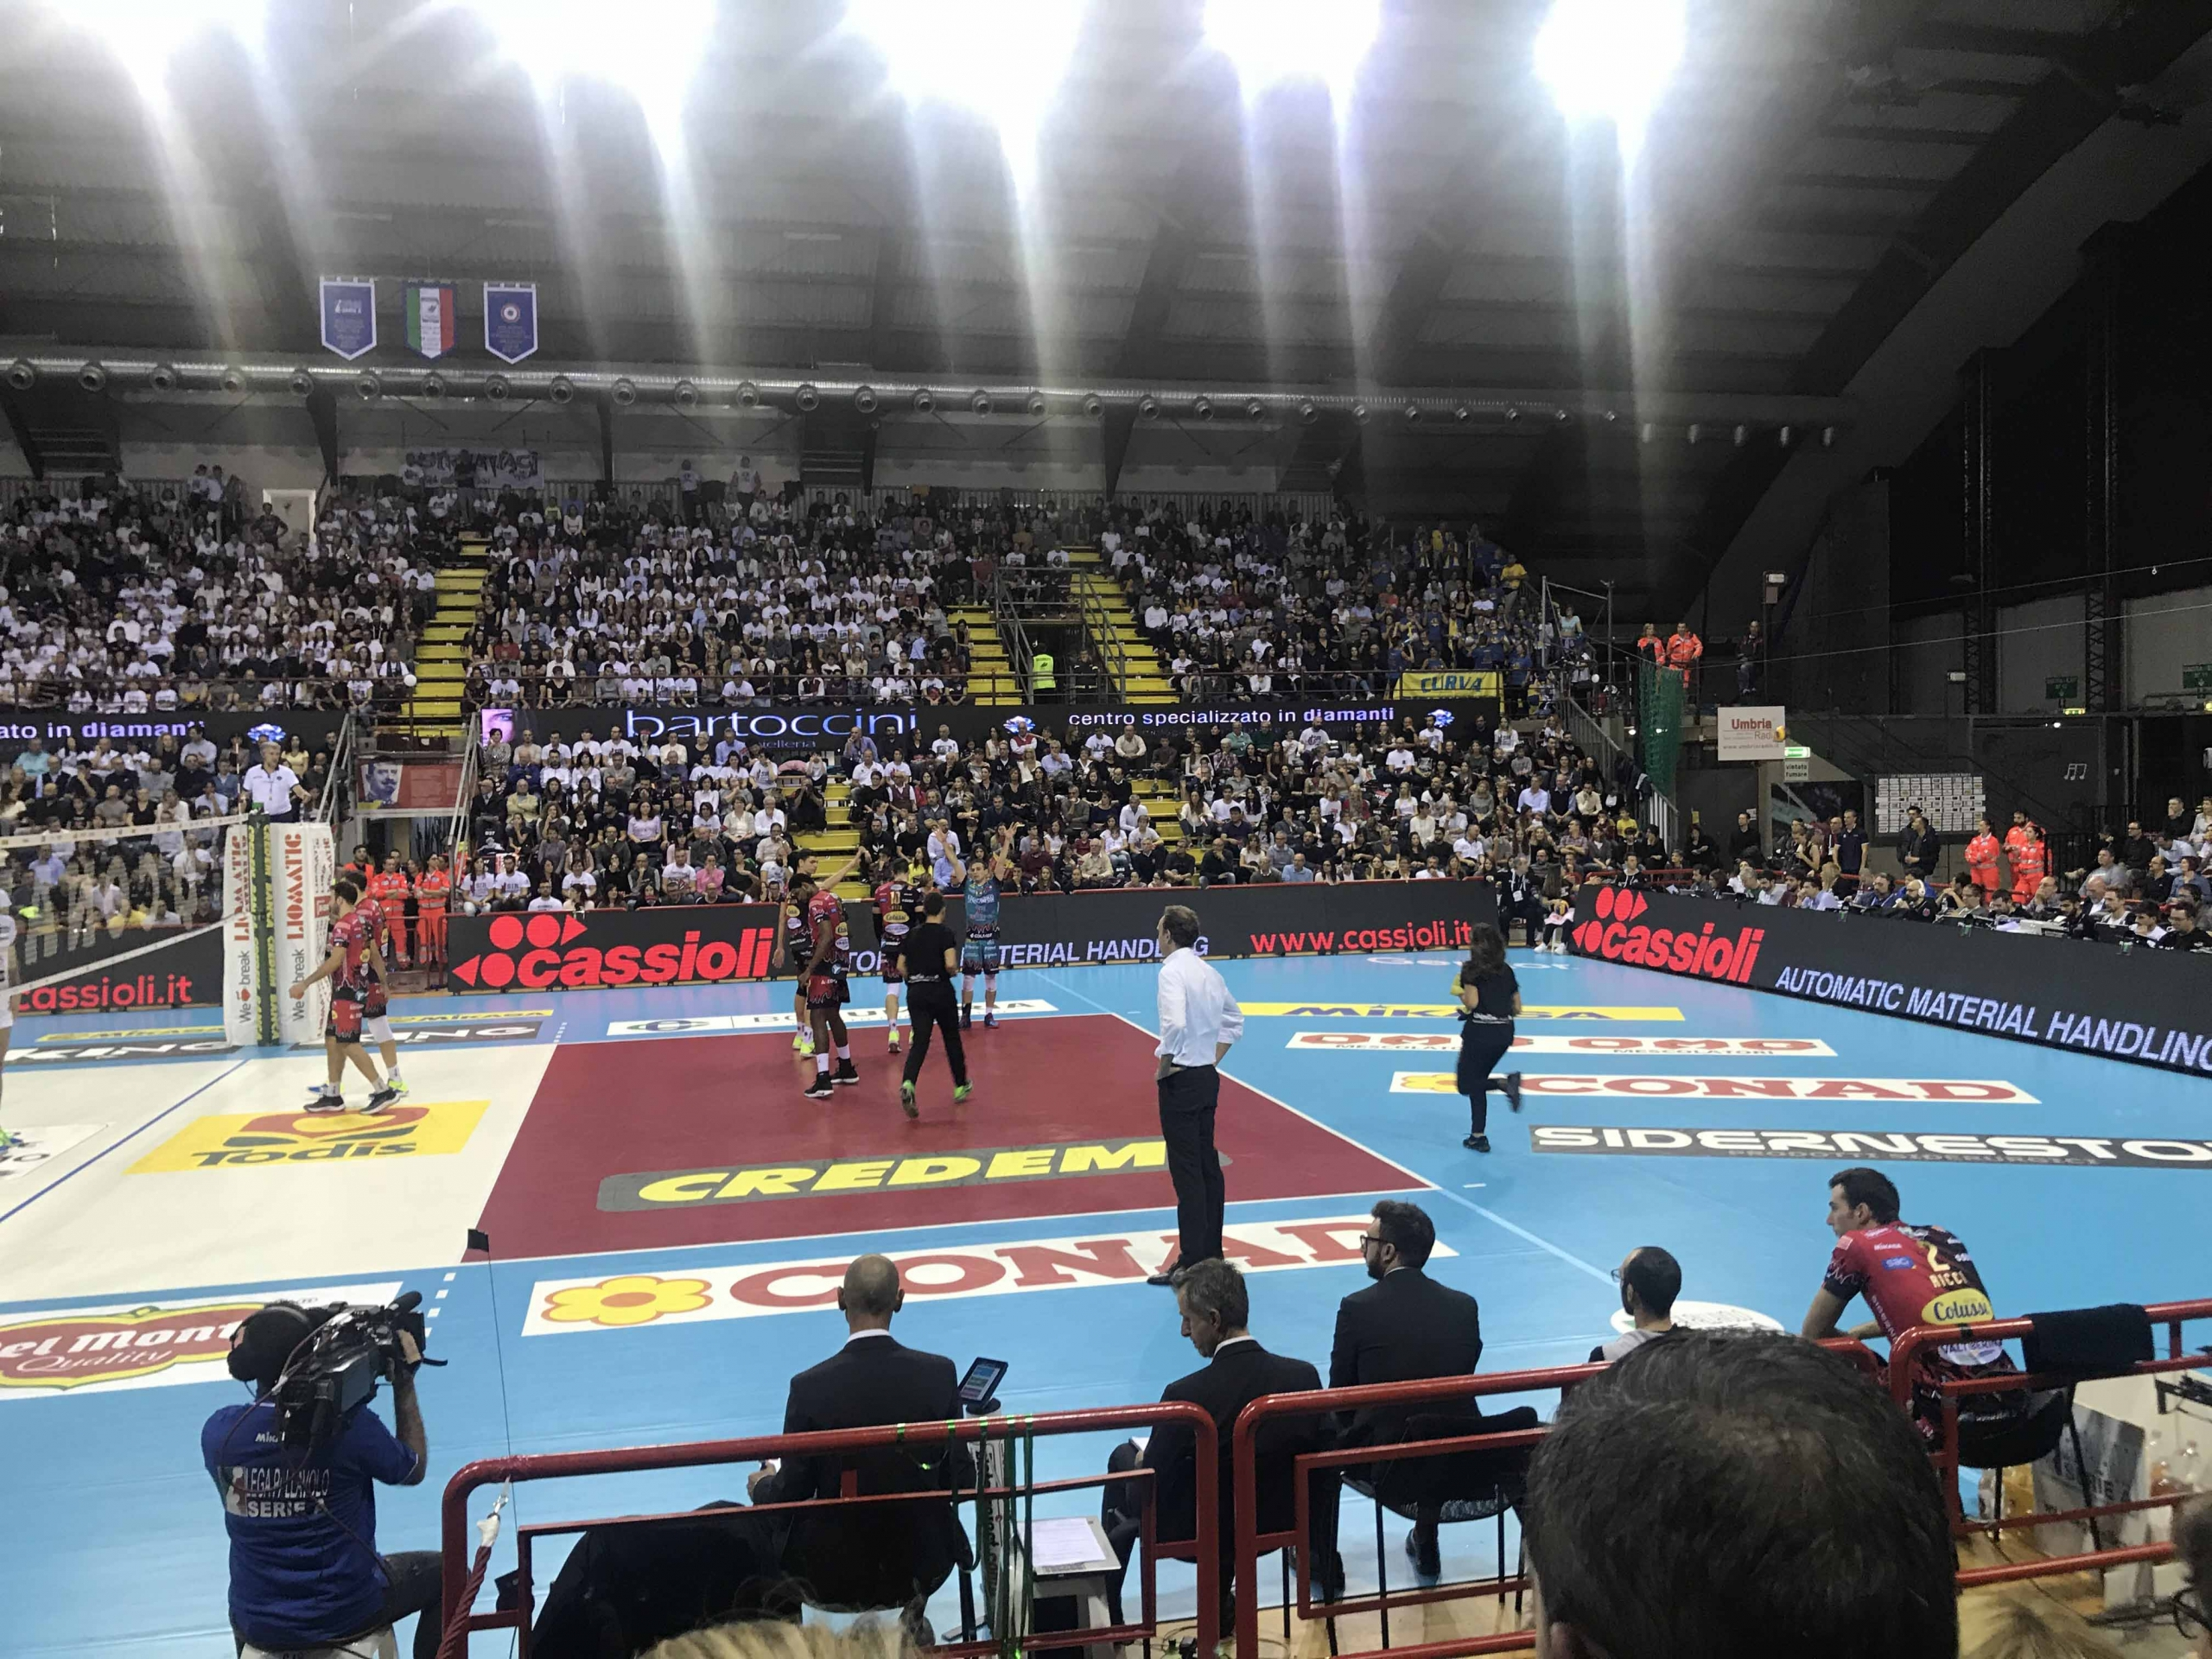 cassioli sir safety volley perugia